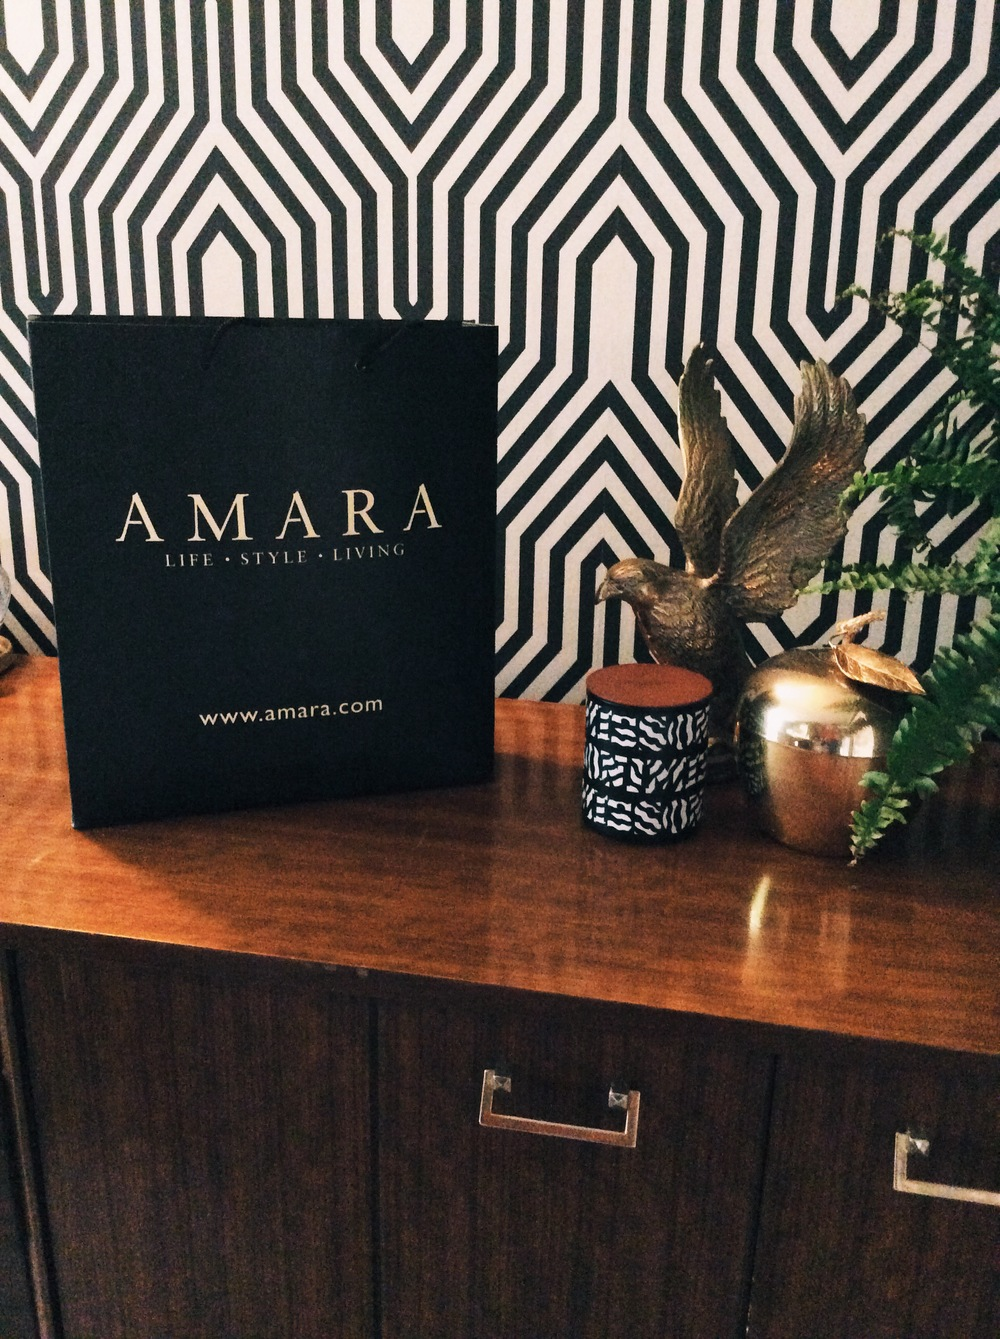 amara interior blogging awards winners goodie bag